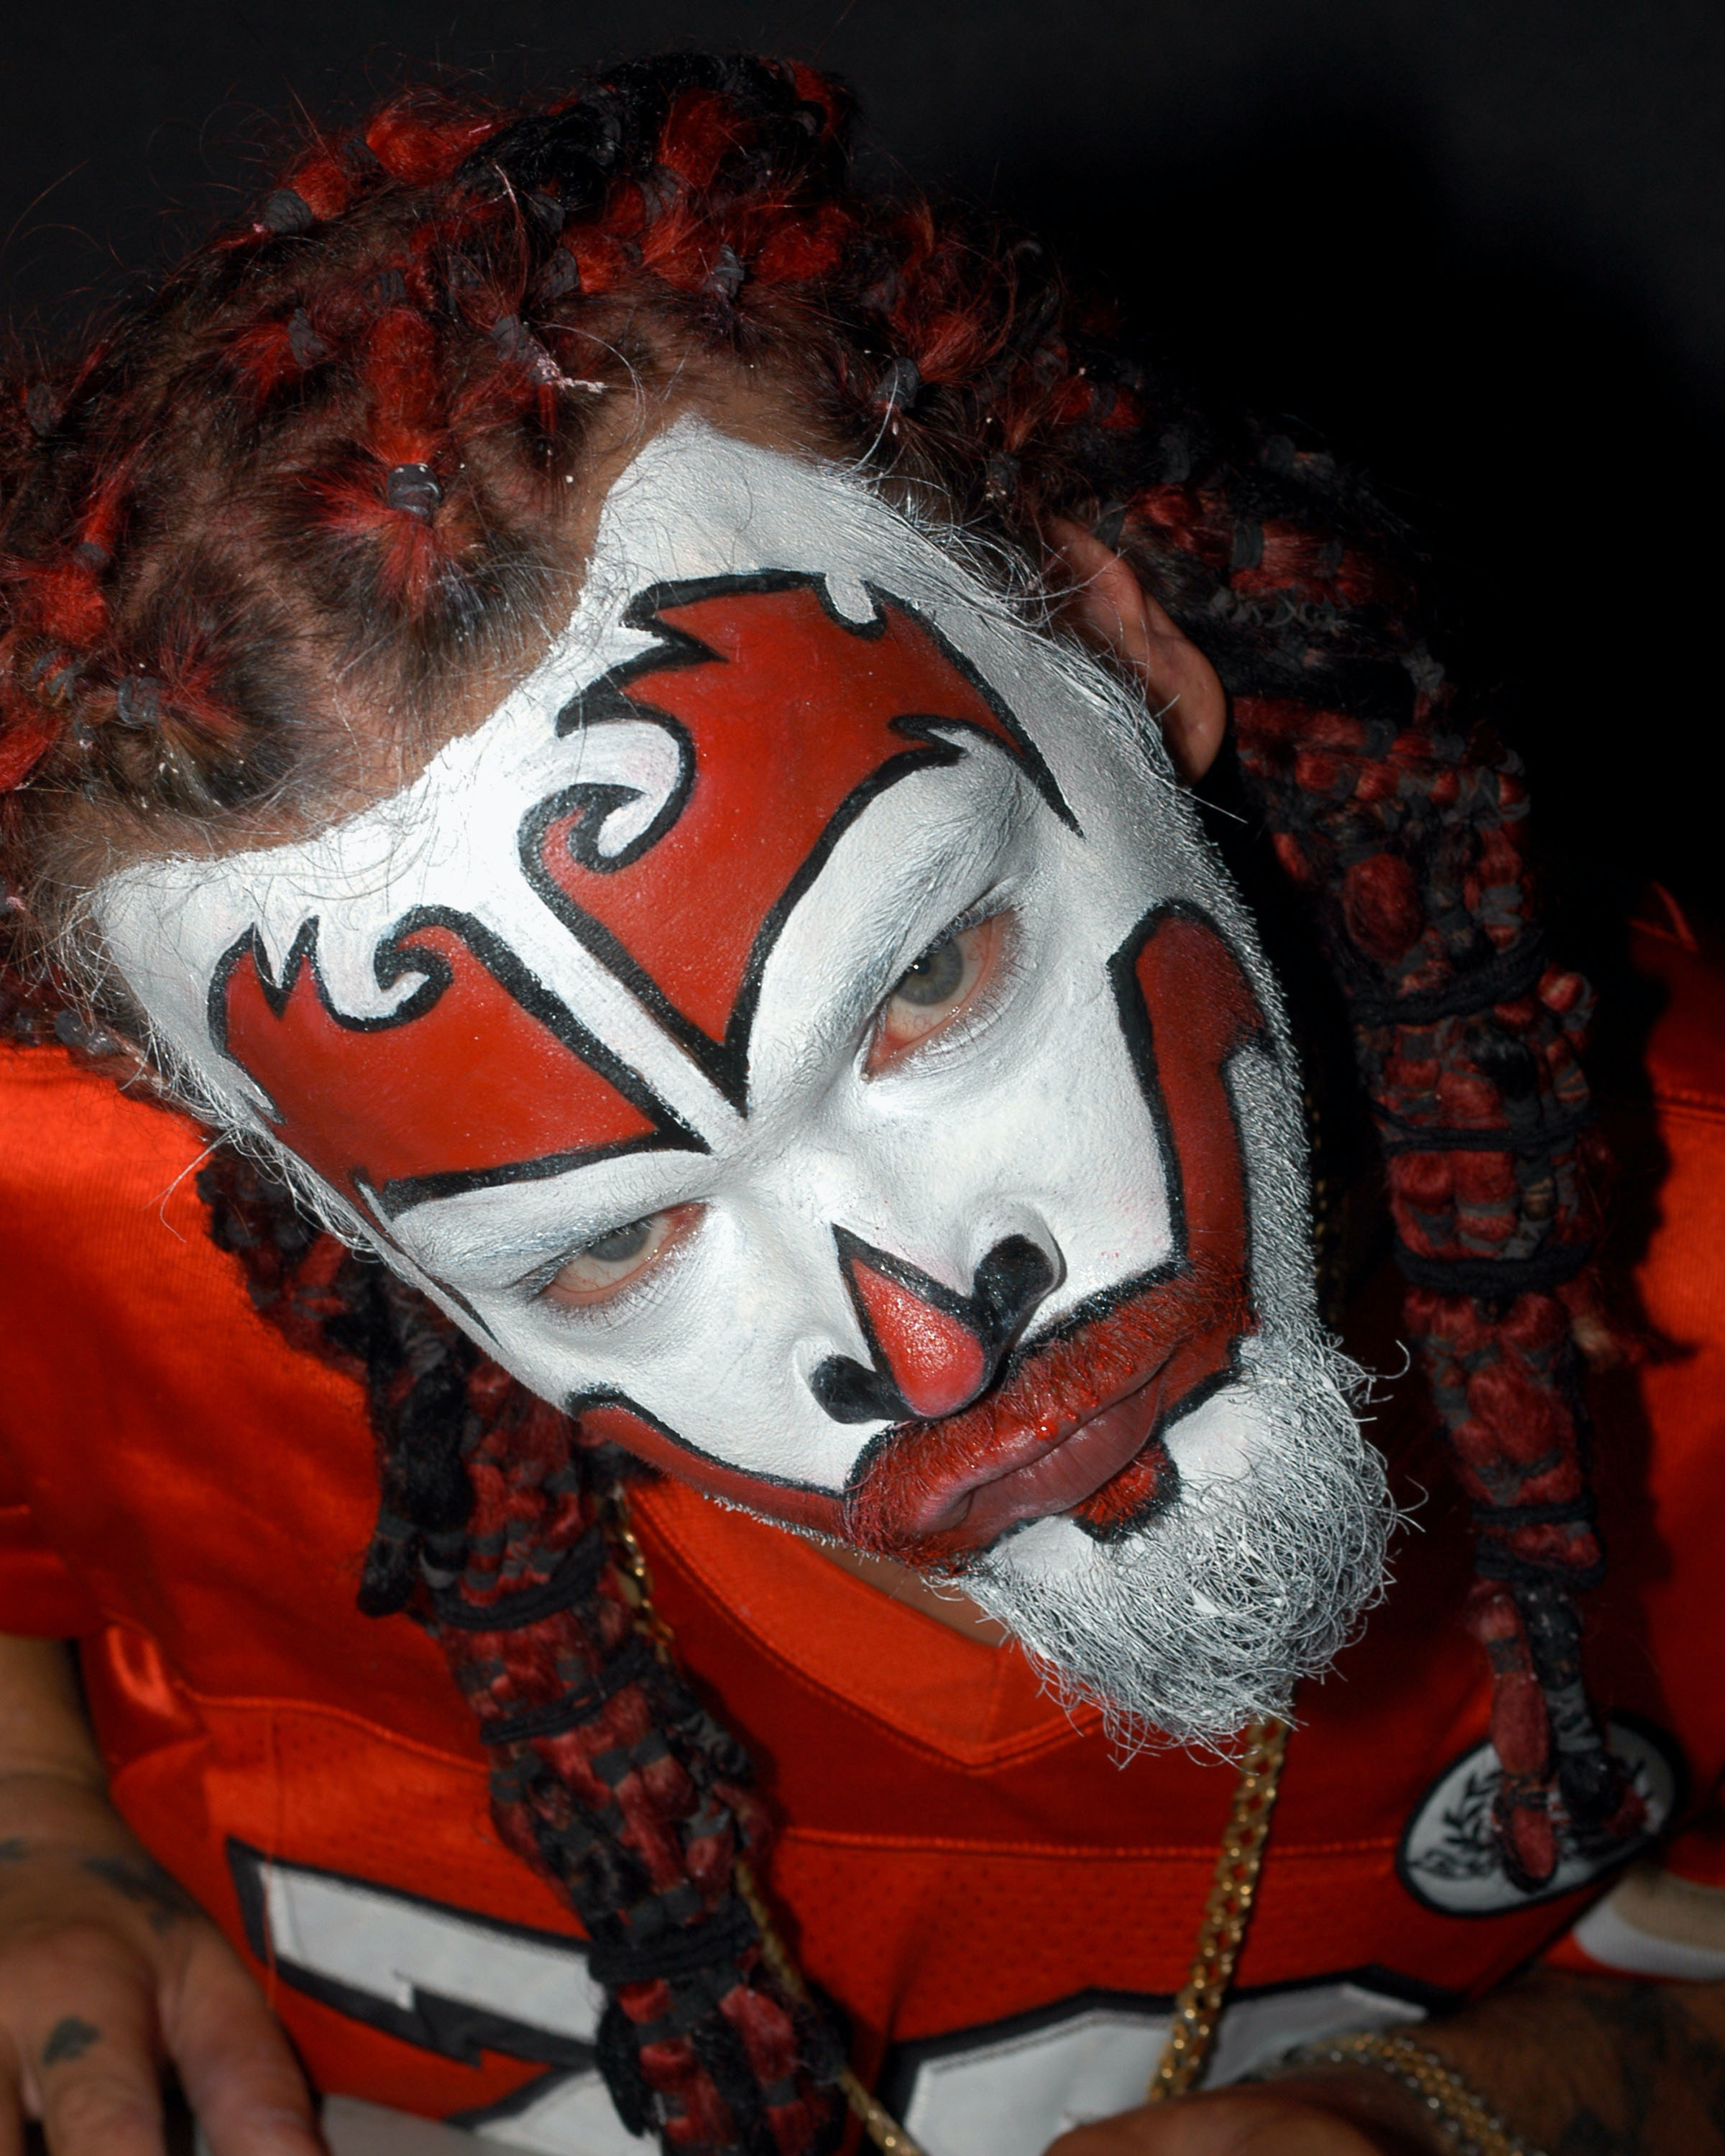 Juggalo March Photos: Pictures from the March on Washington